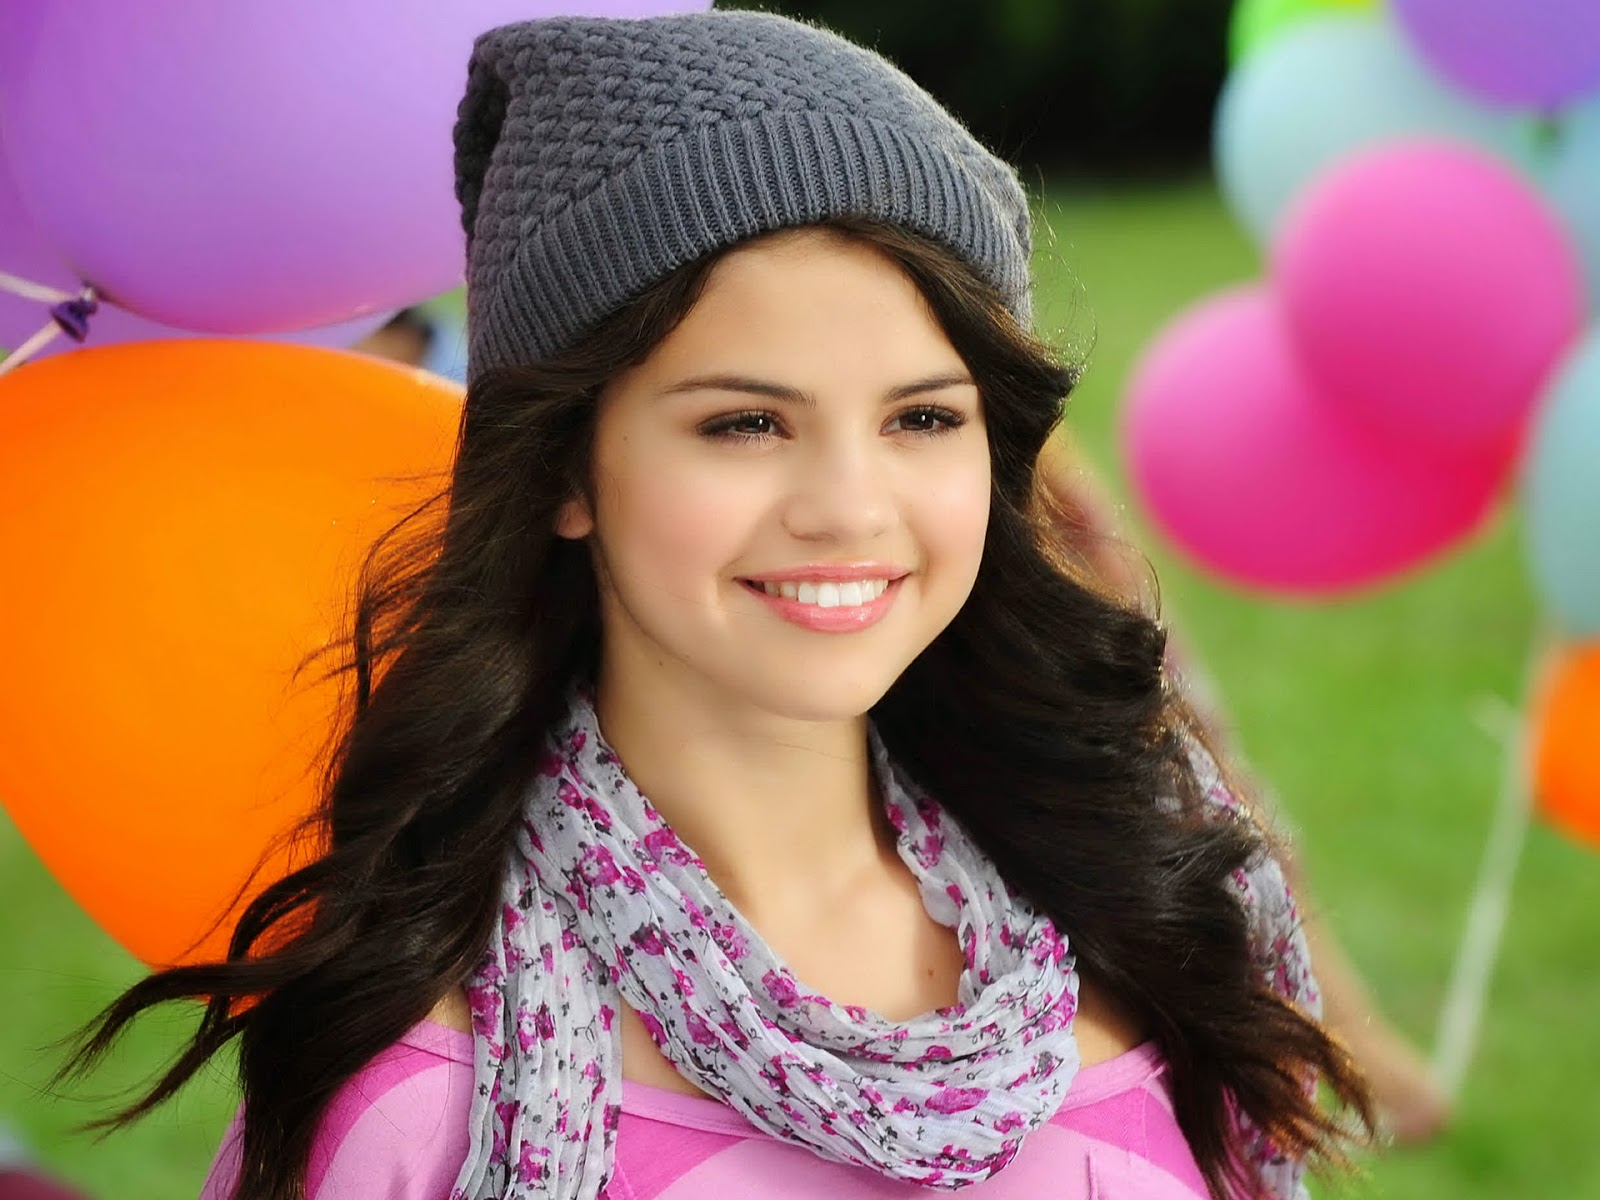 selena gomez hd wallpapers free download - lab4photo